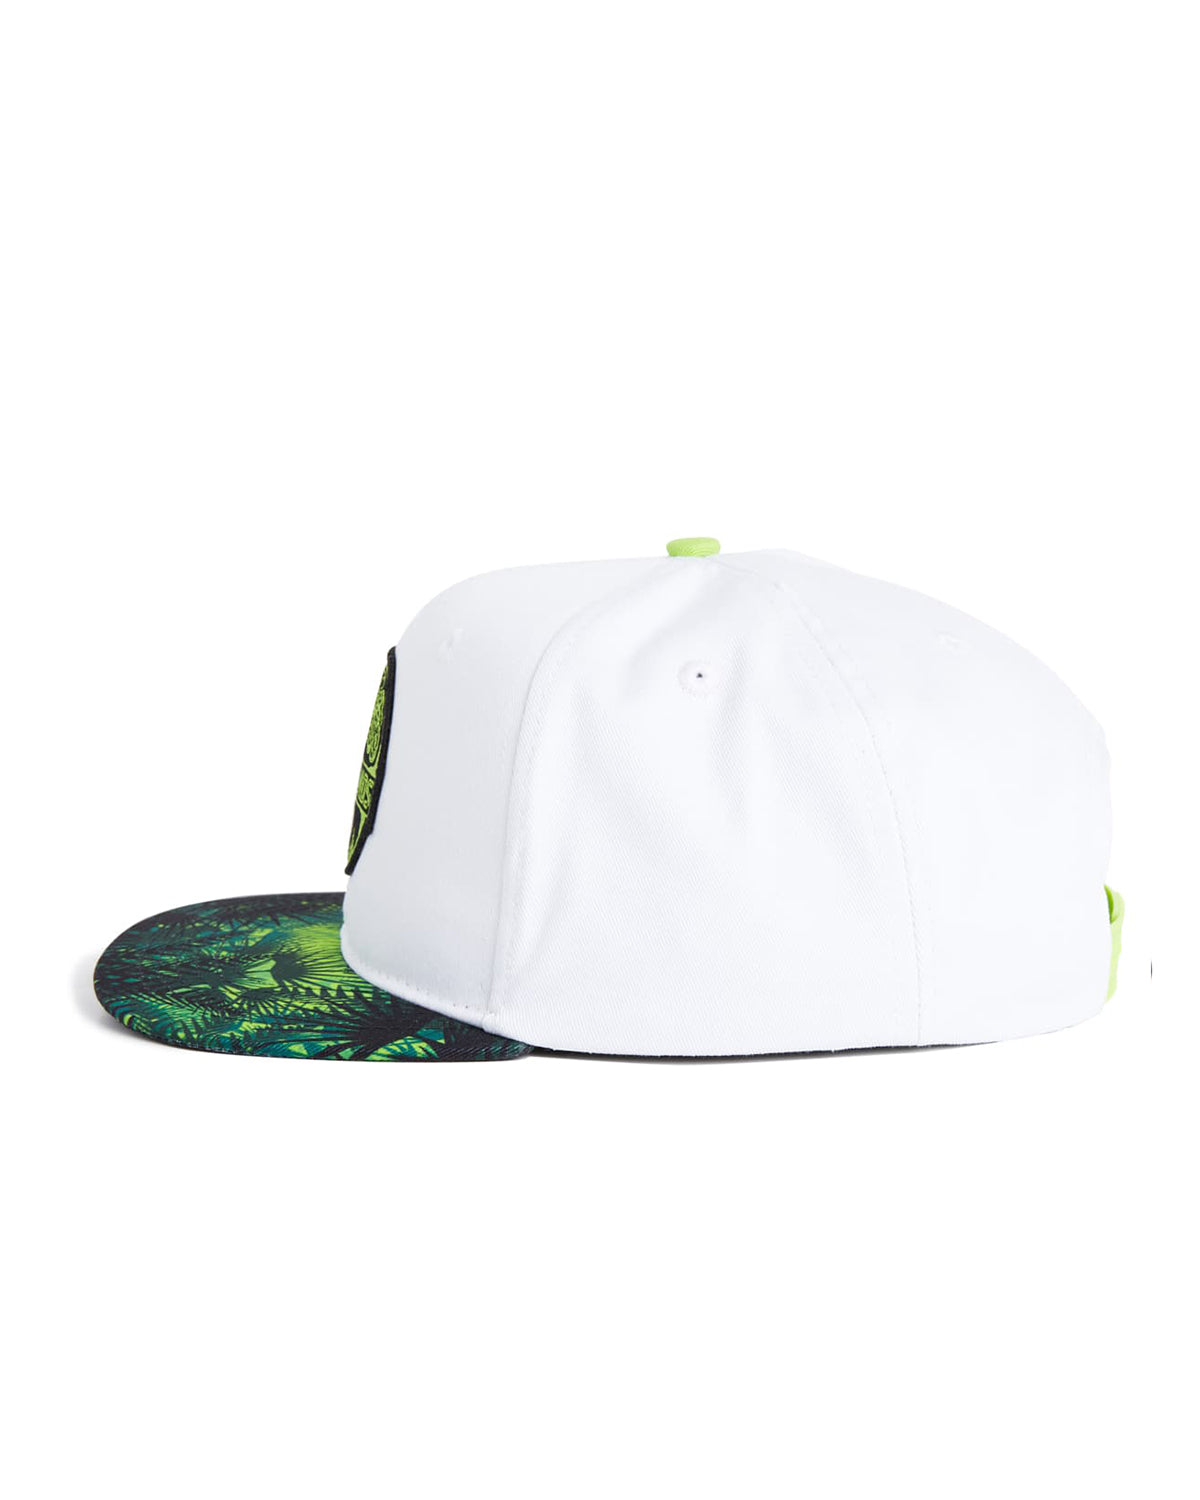 55538435d Lost Lands 'Tree of Life' Snapback (White/Green)